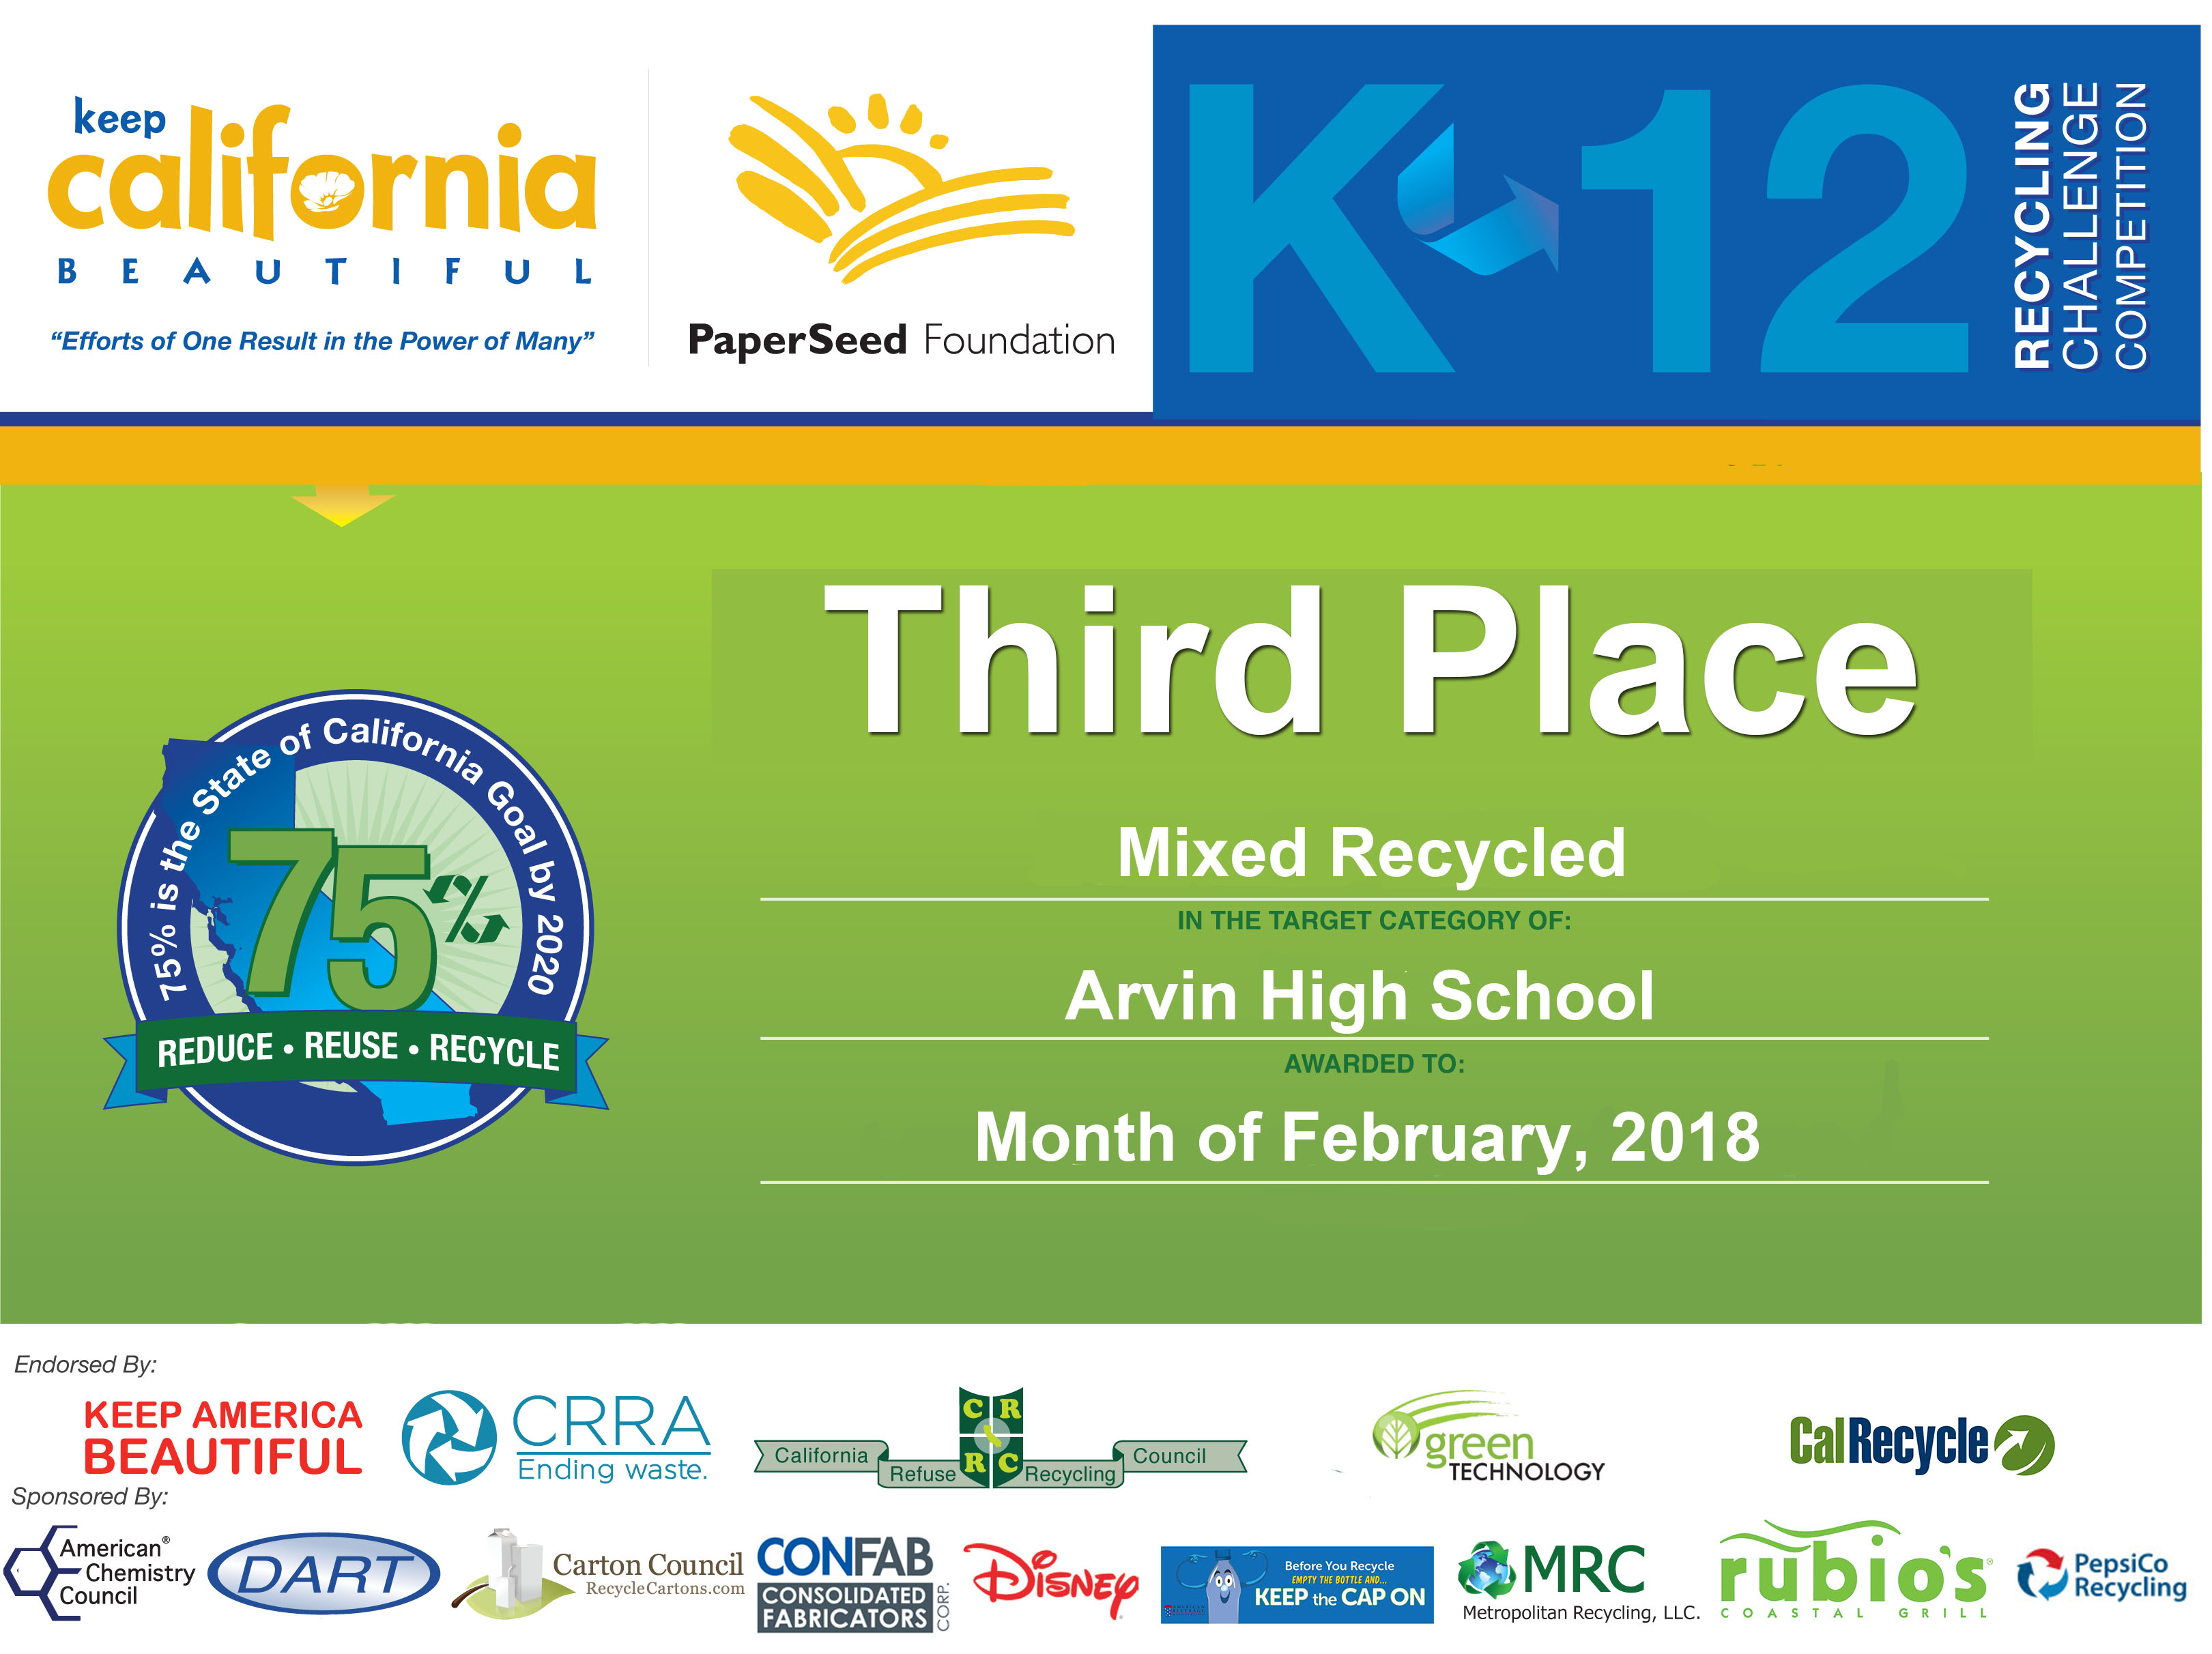 Arvin High School- Mixed Recycled 2018-3rd